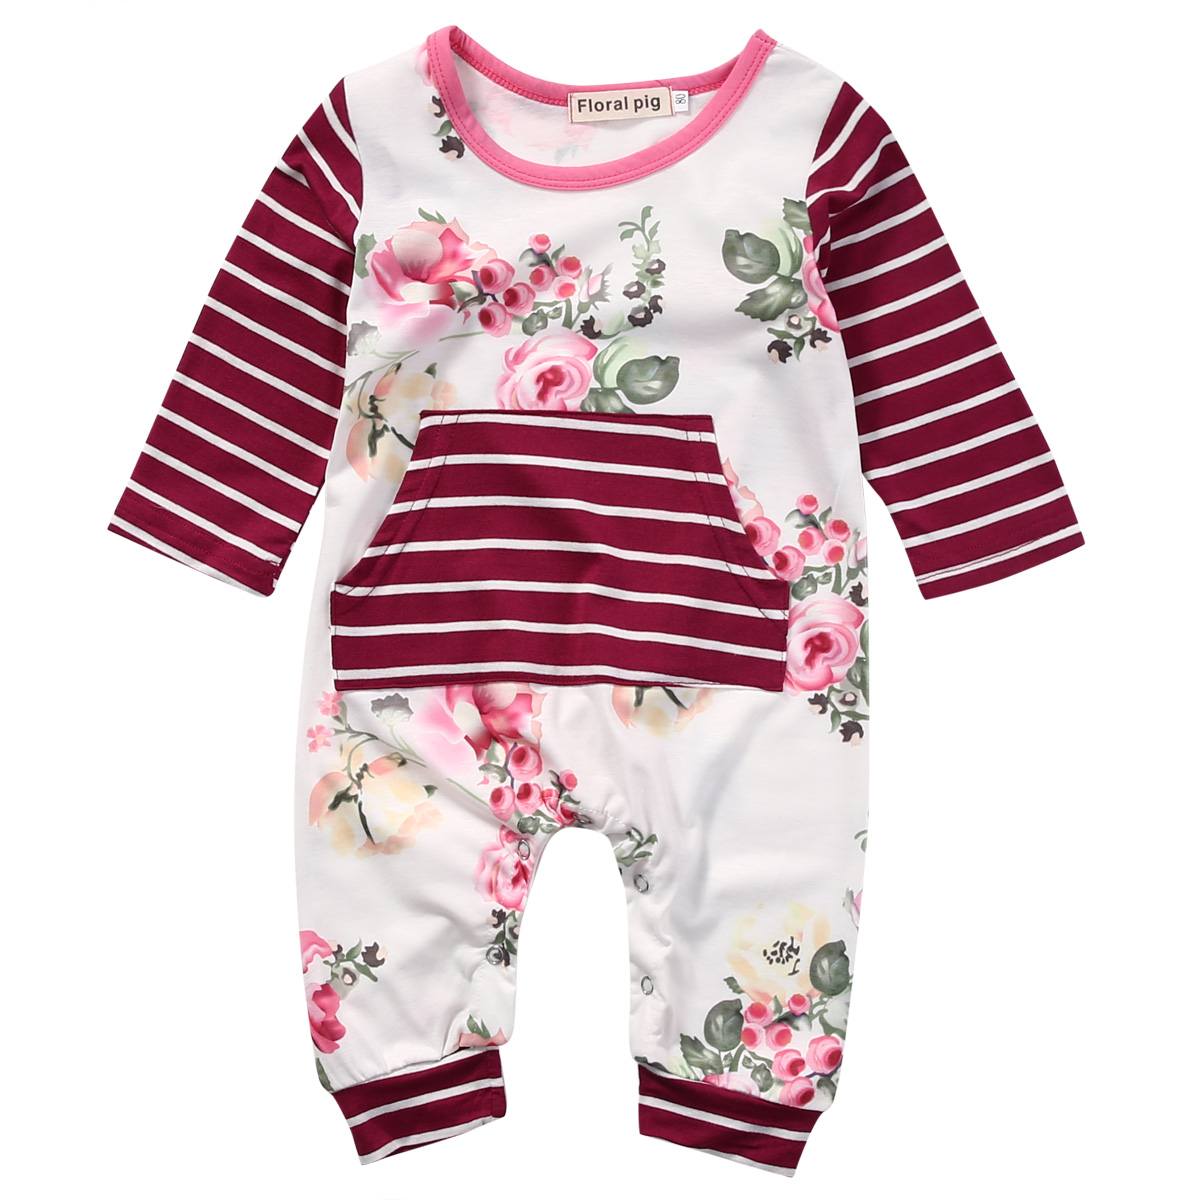 Newborn Infant Kids Baby Girls Cotton Floral Romper One-piece Jumpsuit Outfits Baby Girl Clothes Spring Winter Baby Clothes summer newborn infant baby girl romper short sleeve floral romper jumpsuit outfits sunsuit clothes